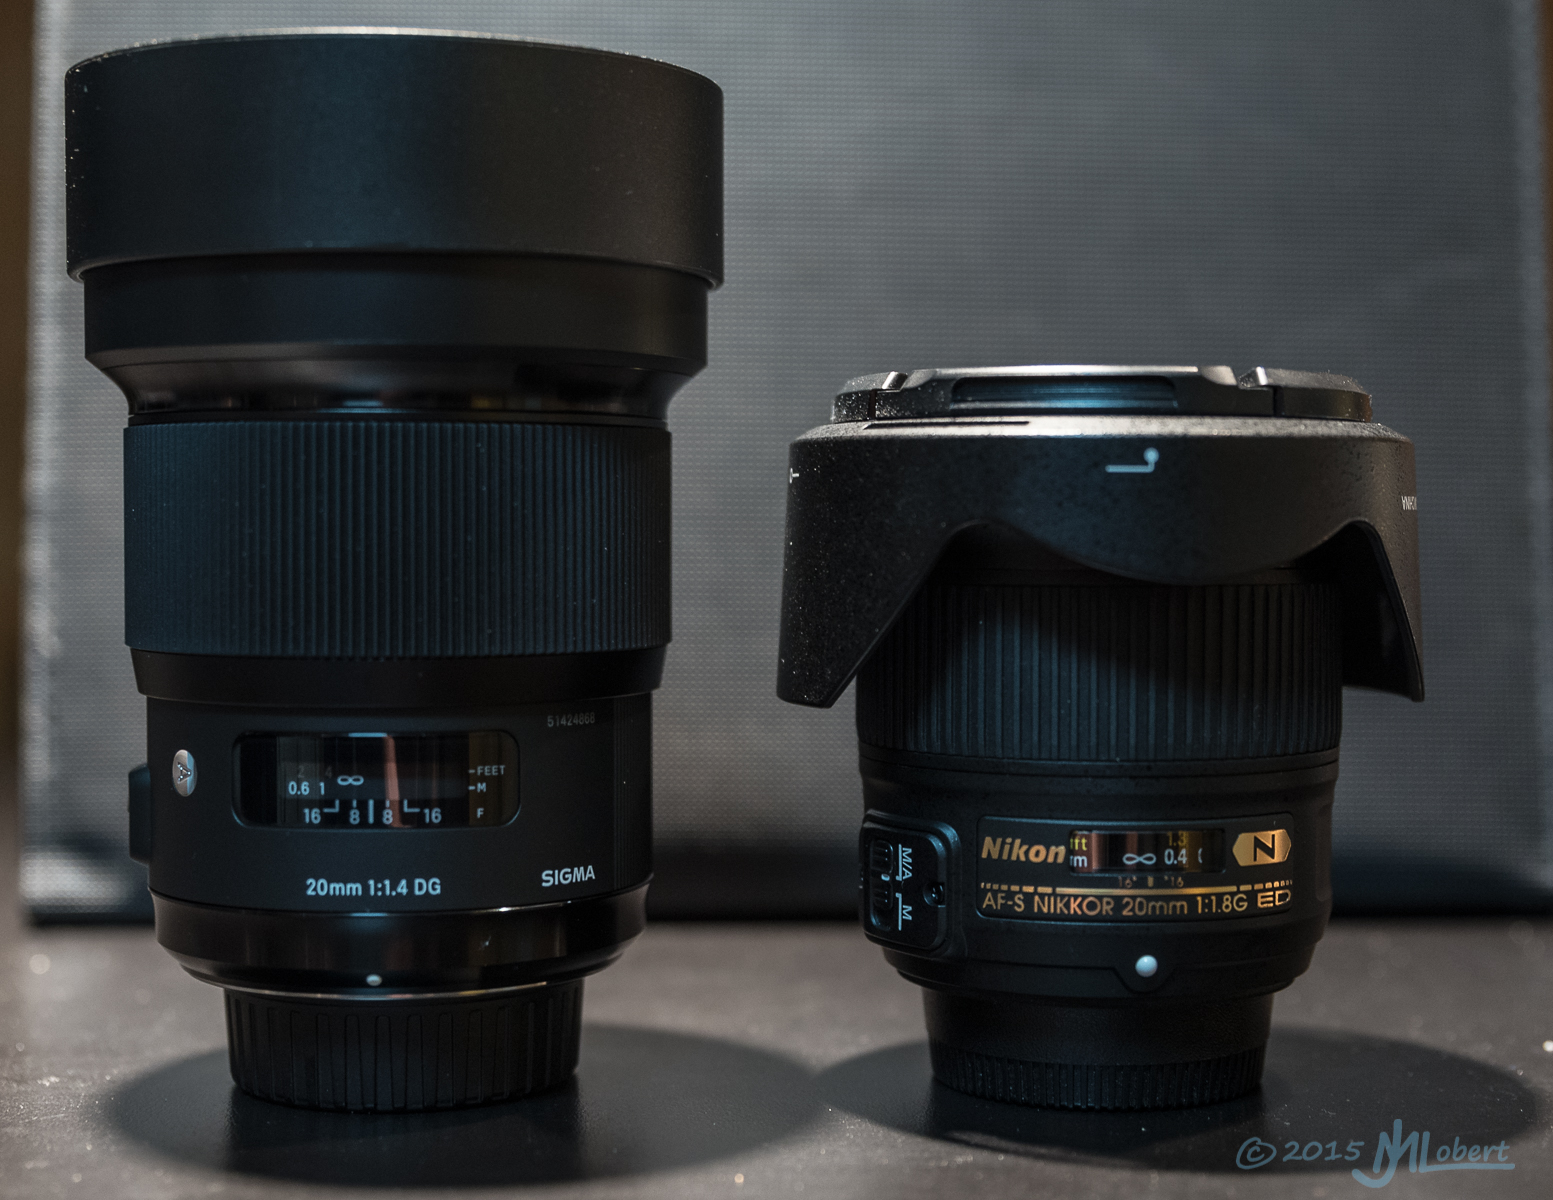 Sigma 20mm F 14 Review Compared To Nikon 18 Jm Lobert For Canon 50mm Dg Hsm Art The From Here On Called S14 Is A Very Beefy Lens Especially N18 In Fact It Much Closer Size And